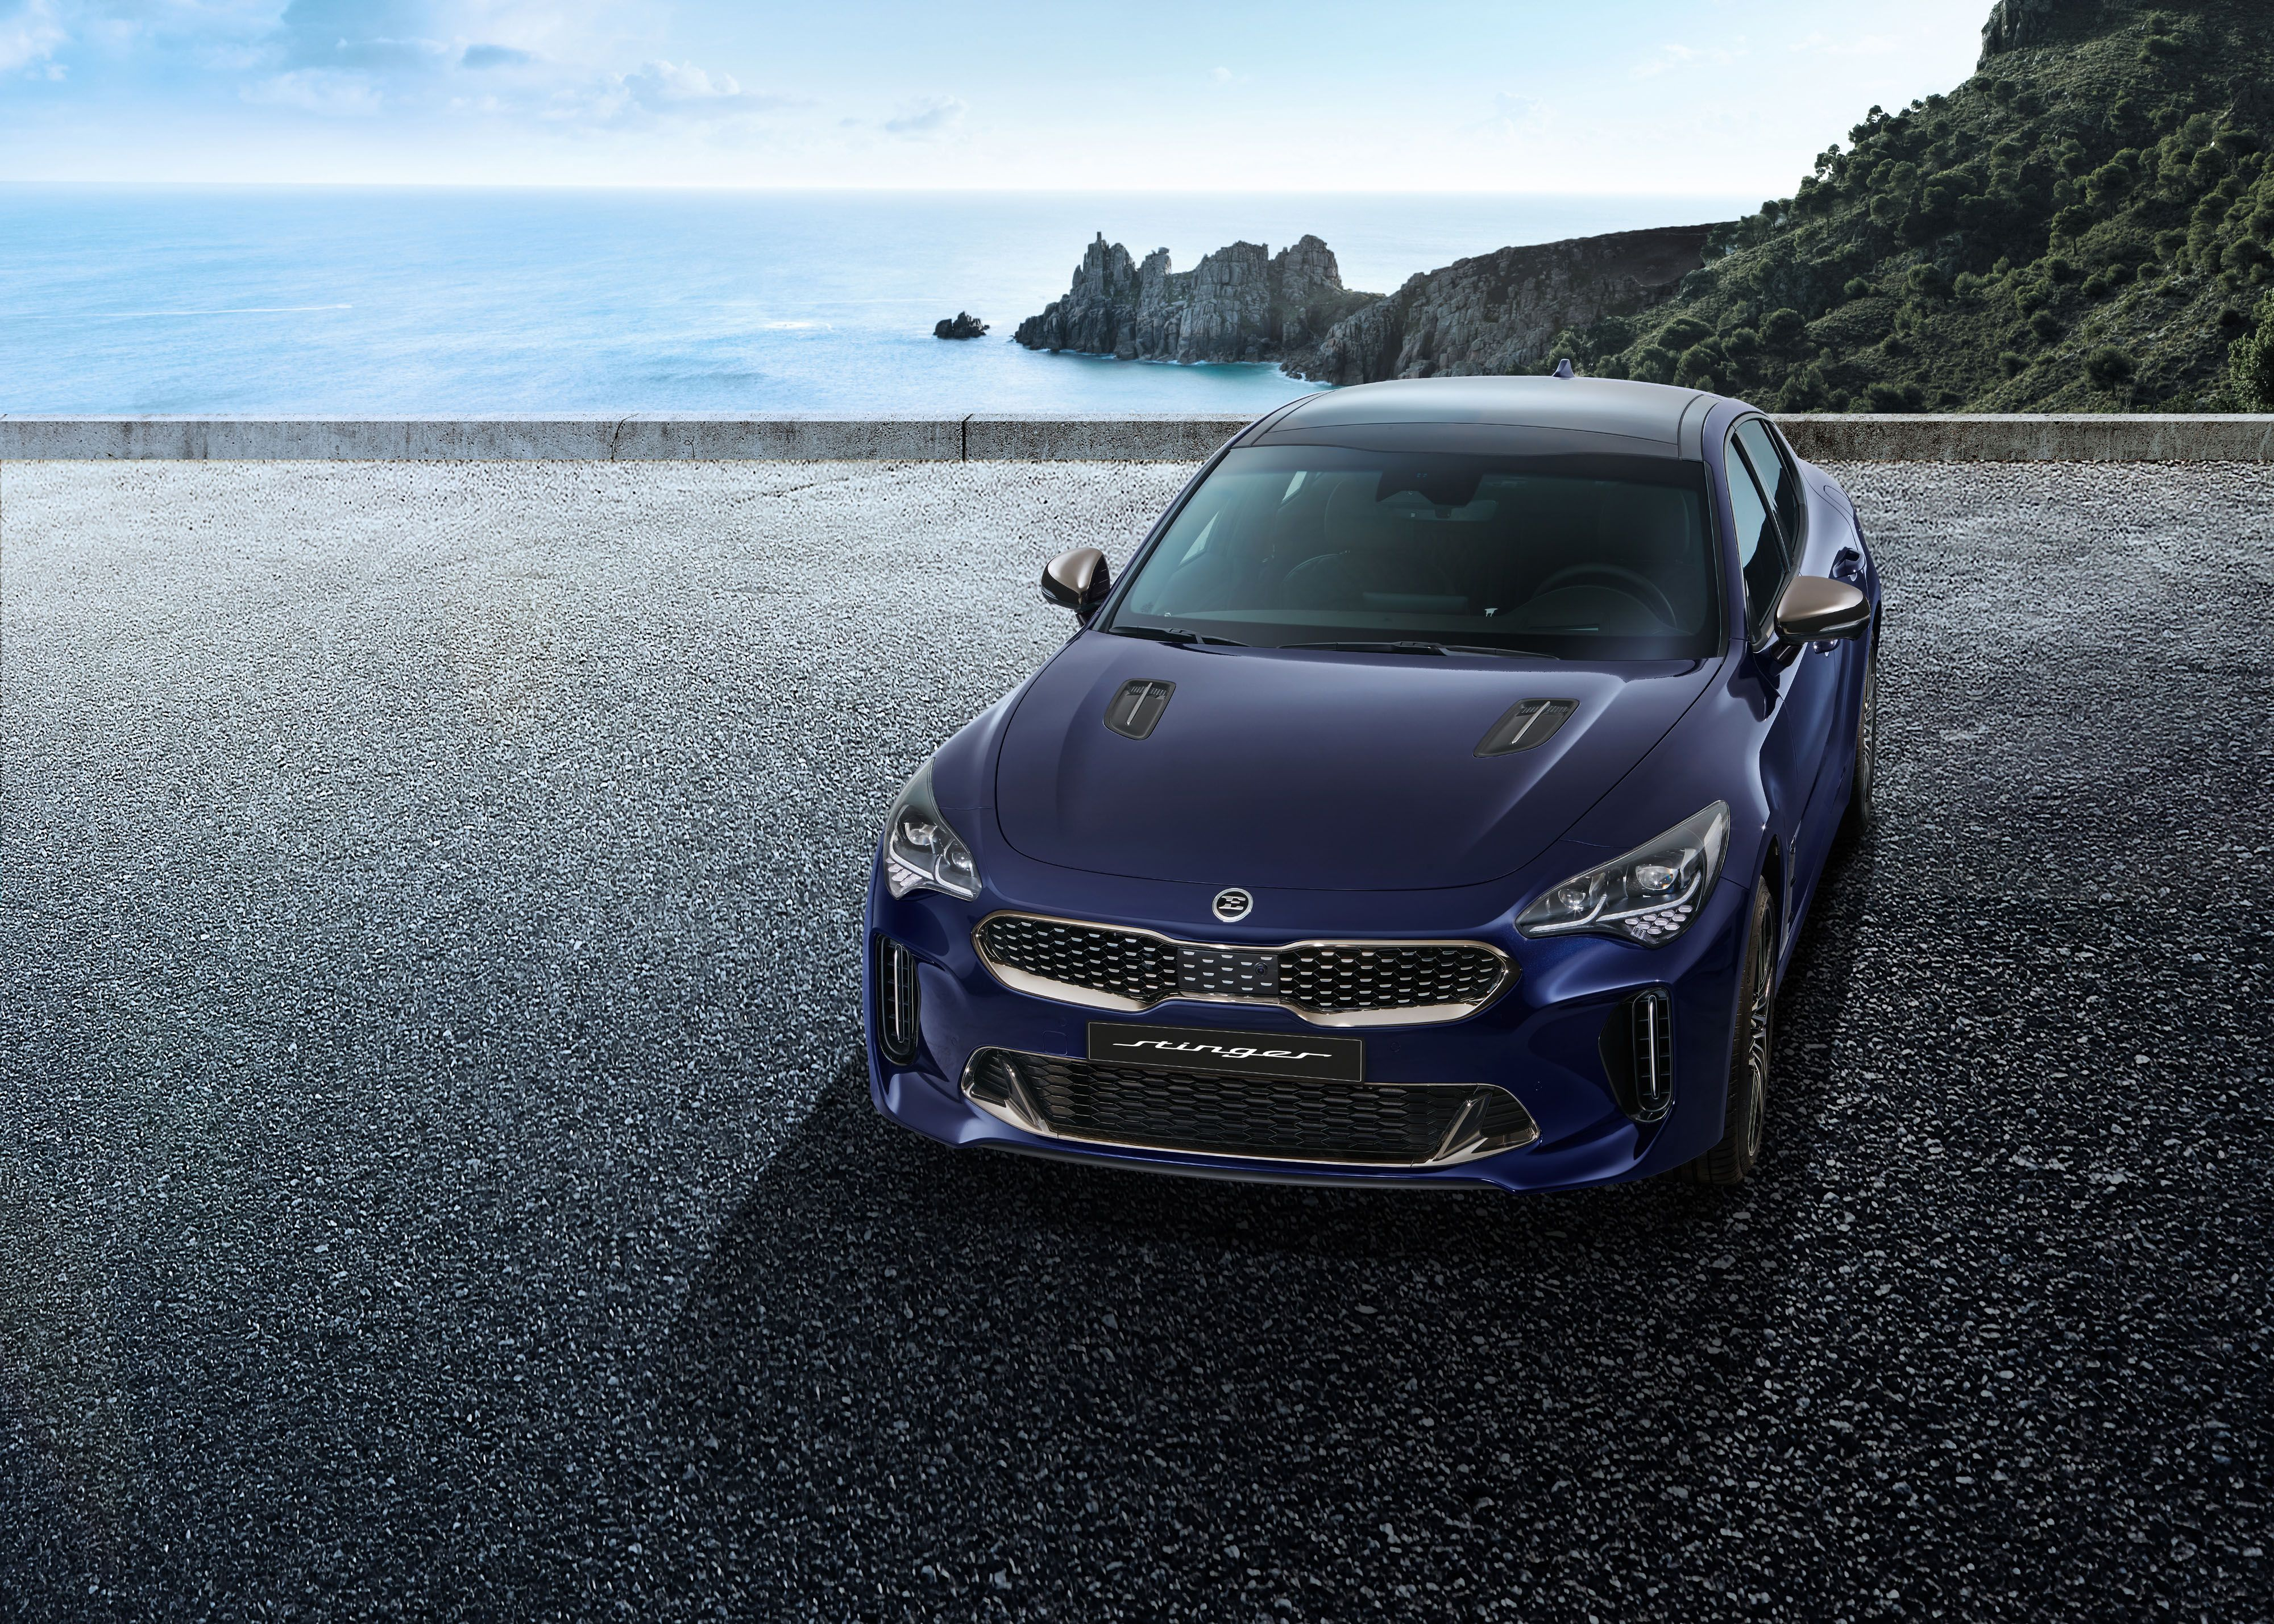 4 Kia Stinger Review, Pricing, and Specs